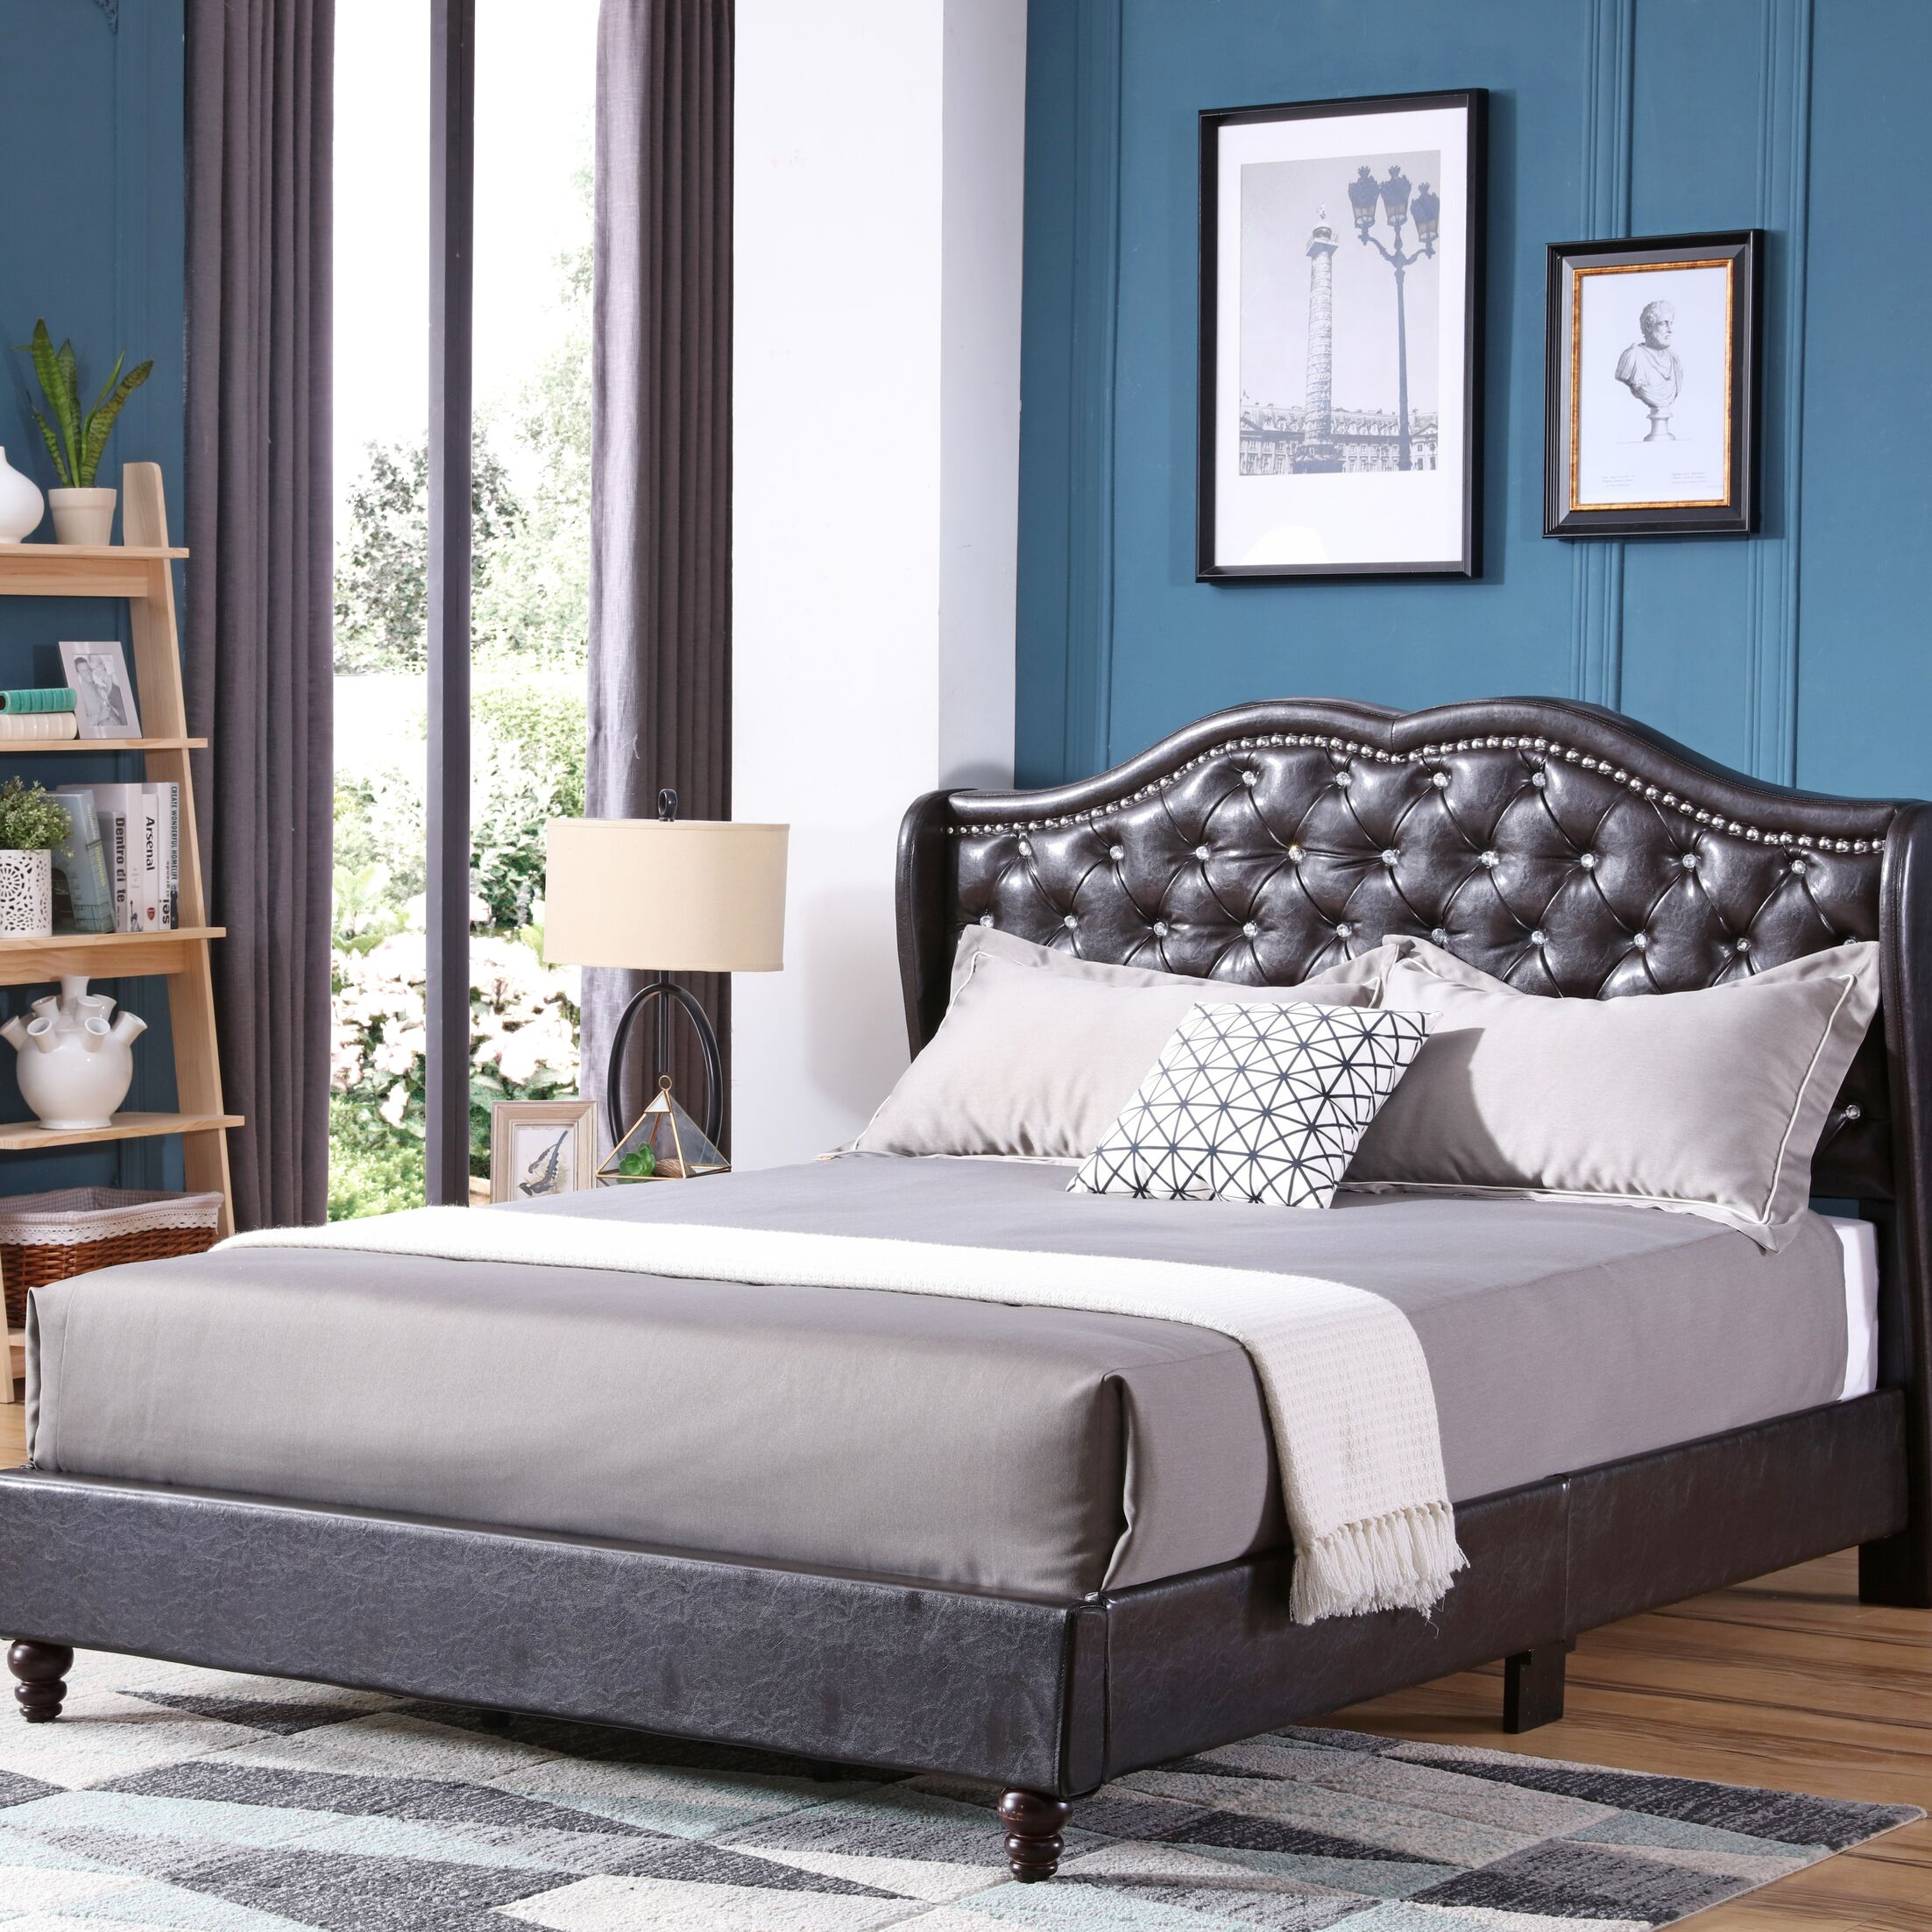 Cobbett Upholstered Panel Bed Size: Full/Double, Color: Cappuccino